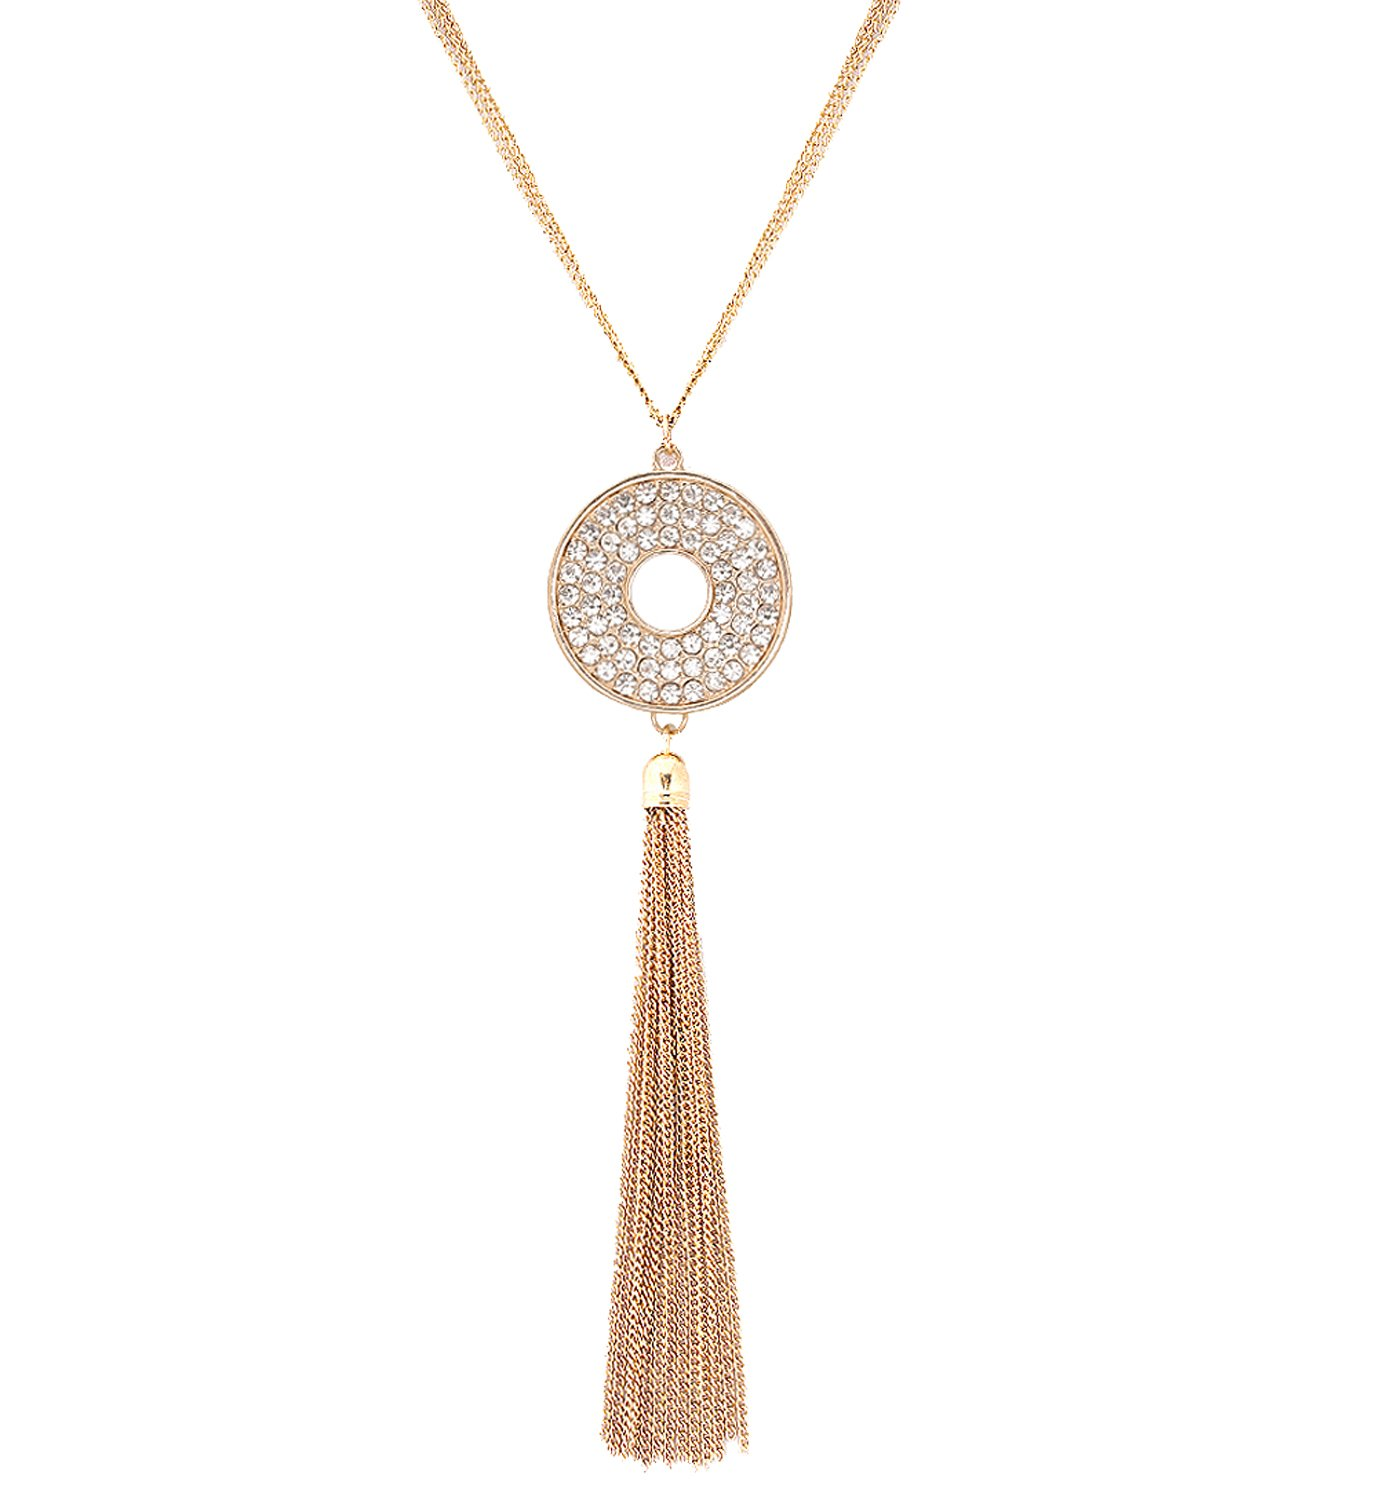 VUJANTIRY Long Tassel Circle Disc Pendant Necklace for Women Crystal Necklace Multistrand Chain Fringe Necklace by VUJANTIRY